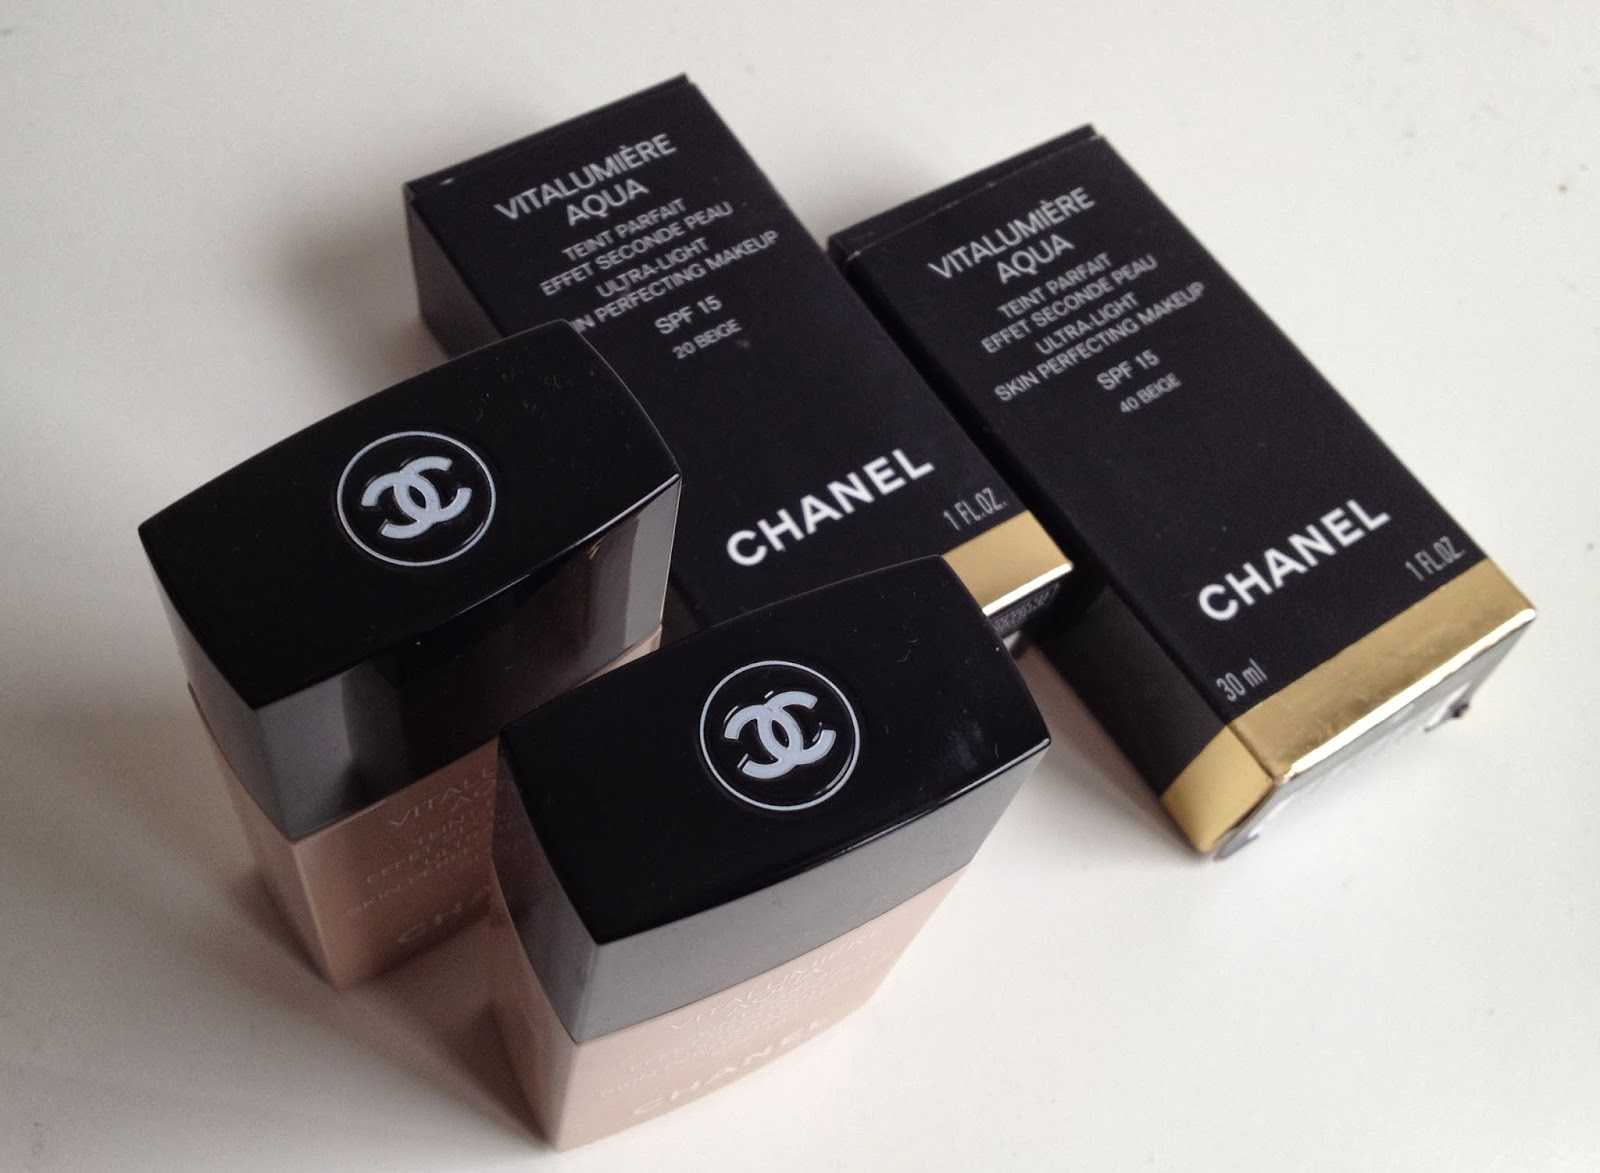 Chanel Vitalumiere Aqua Foundation B20 & B40